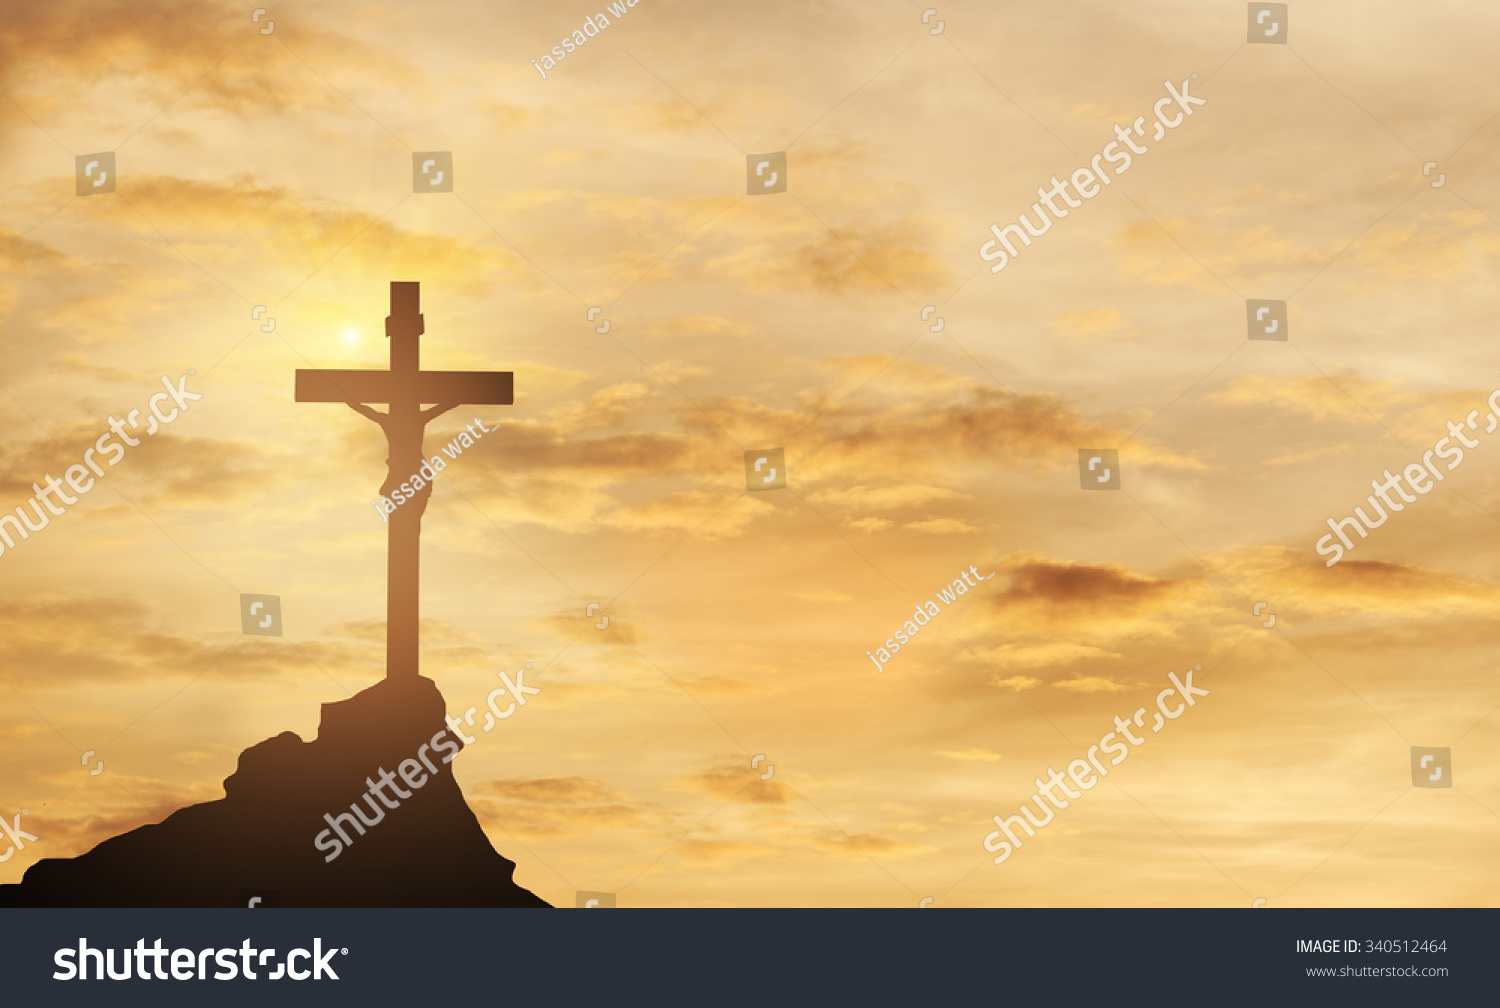 Silhouette of the holy cross on background of storm clouds stock - Silhouette Jesus And The Cross Over Sunset On Mountain Top